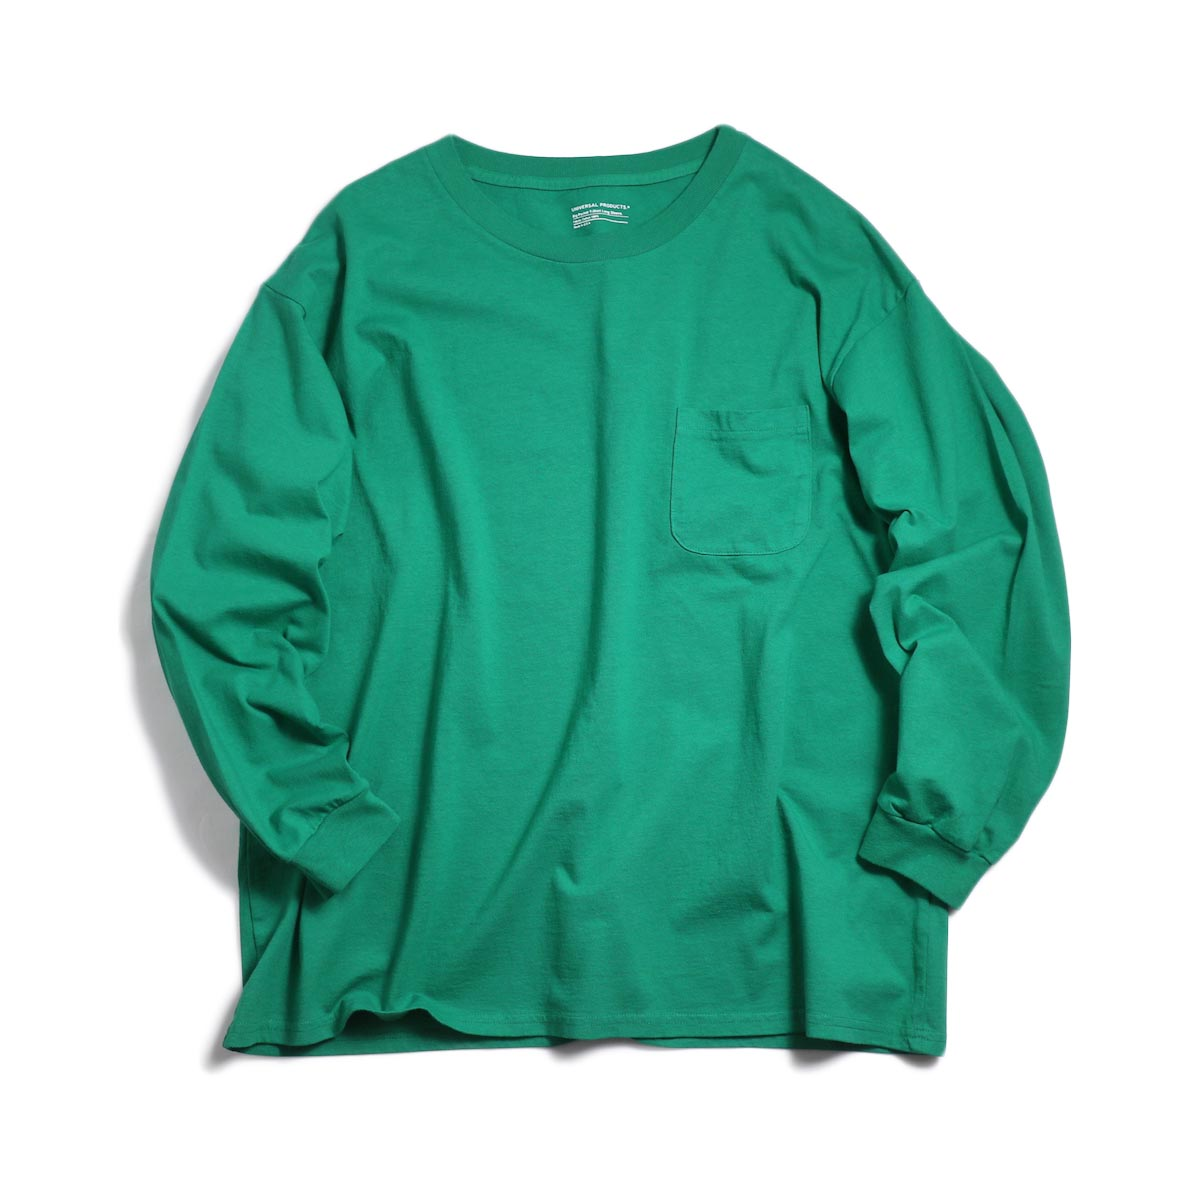 UNIVERSAL PRODUCTS / Heavy Weight L/S T-Shirt -Green